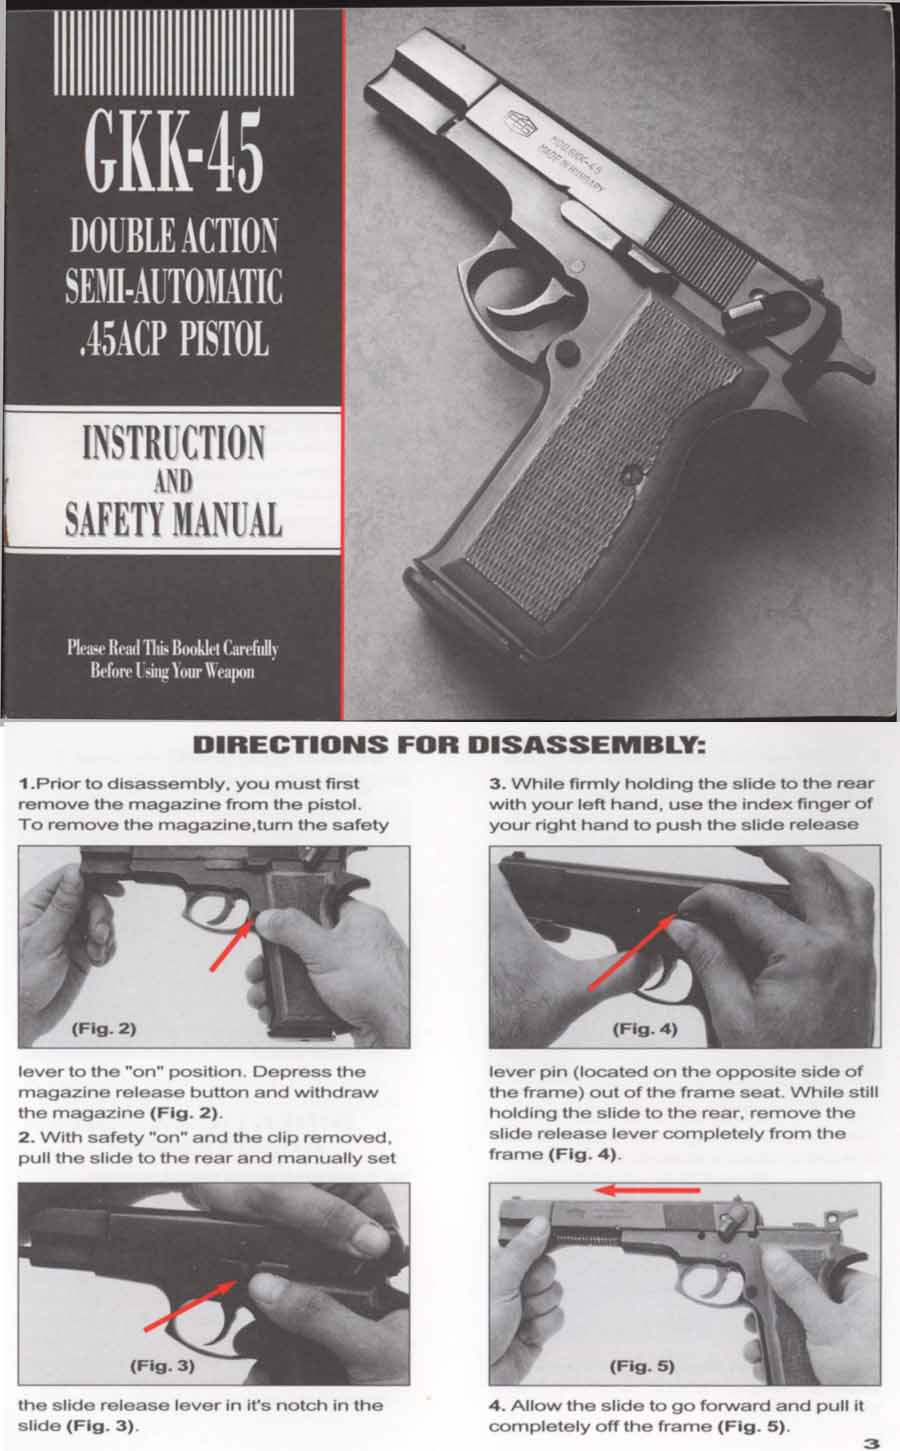 Cornell Publications Llc Old Gun Manuals Featuring Kahr Arms Kimber 1911 Parts Diagram Kbi Gkk 45 Manual